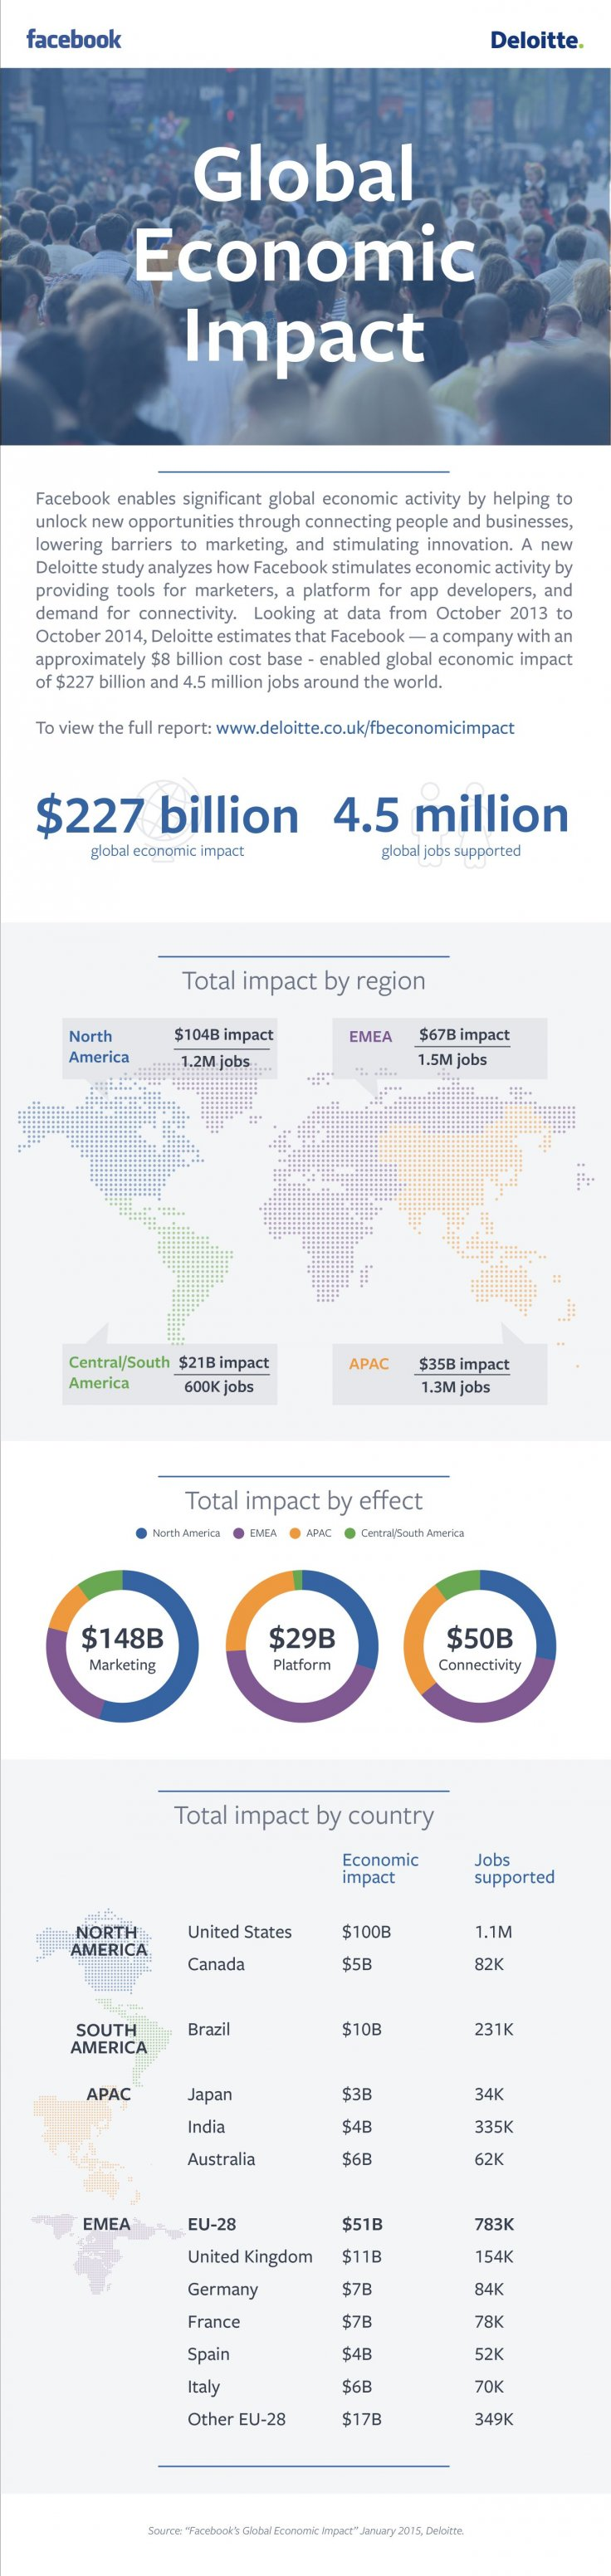 Facebook's global economic impact